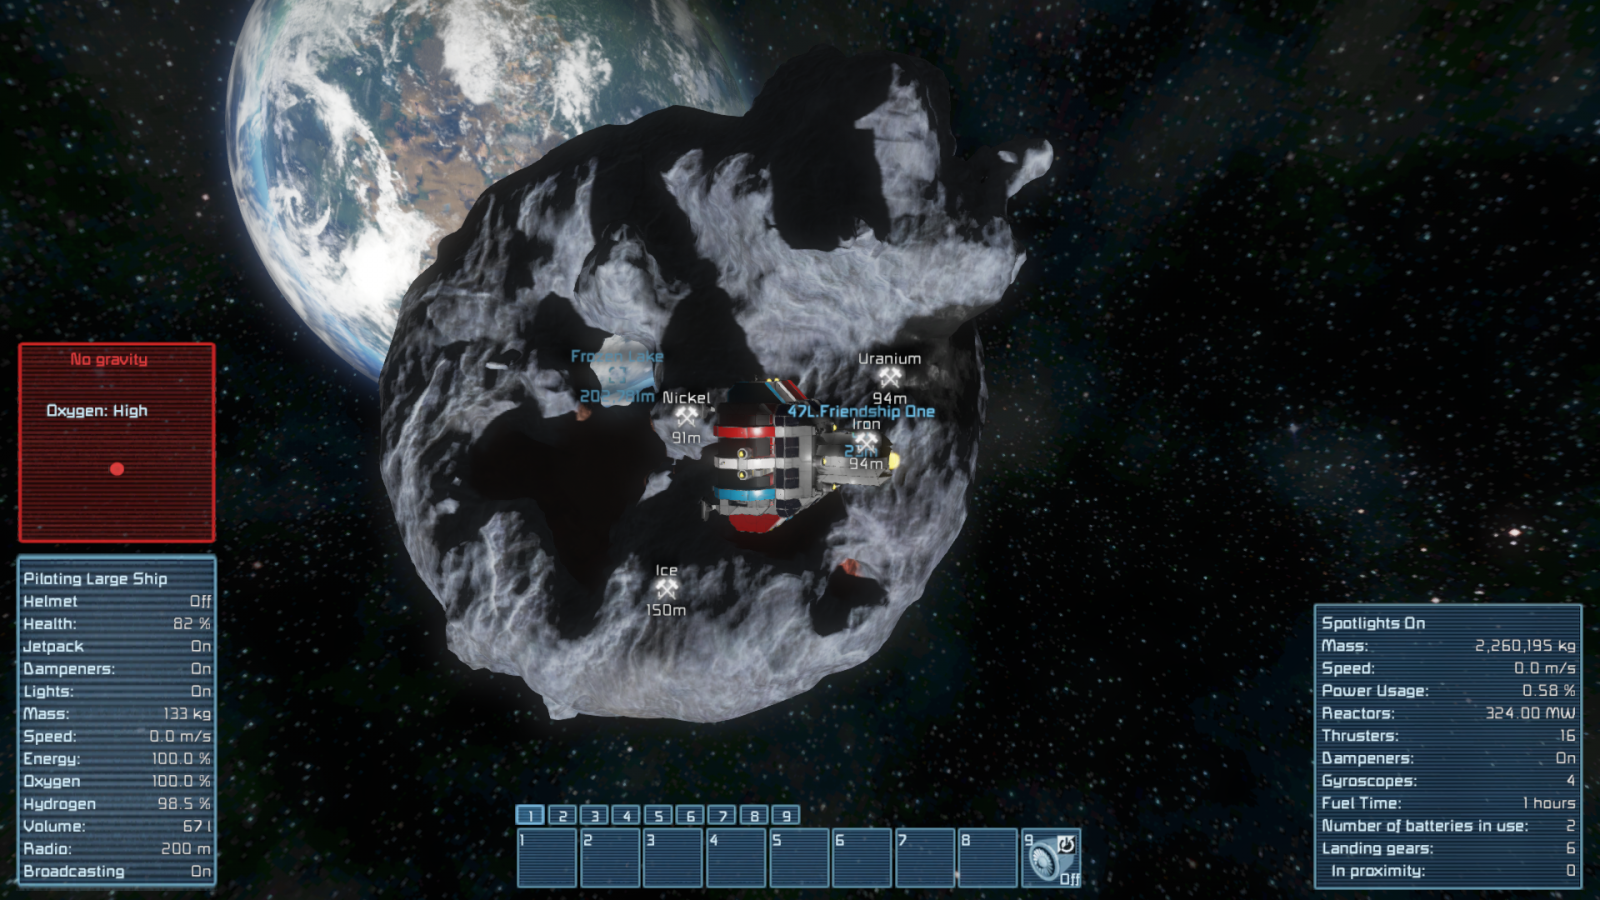 Another view from the asteroid.